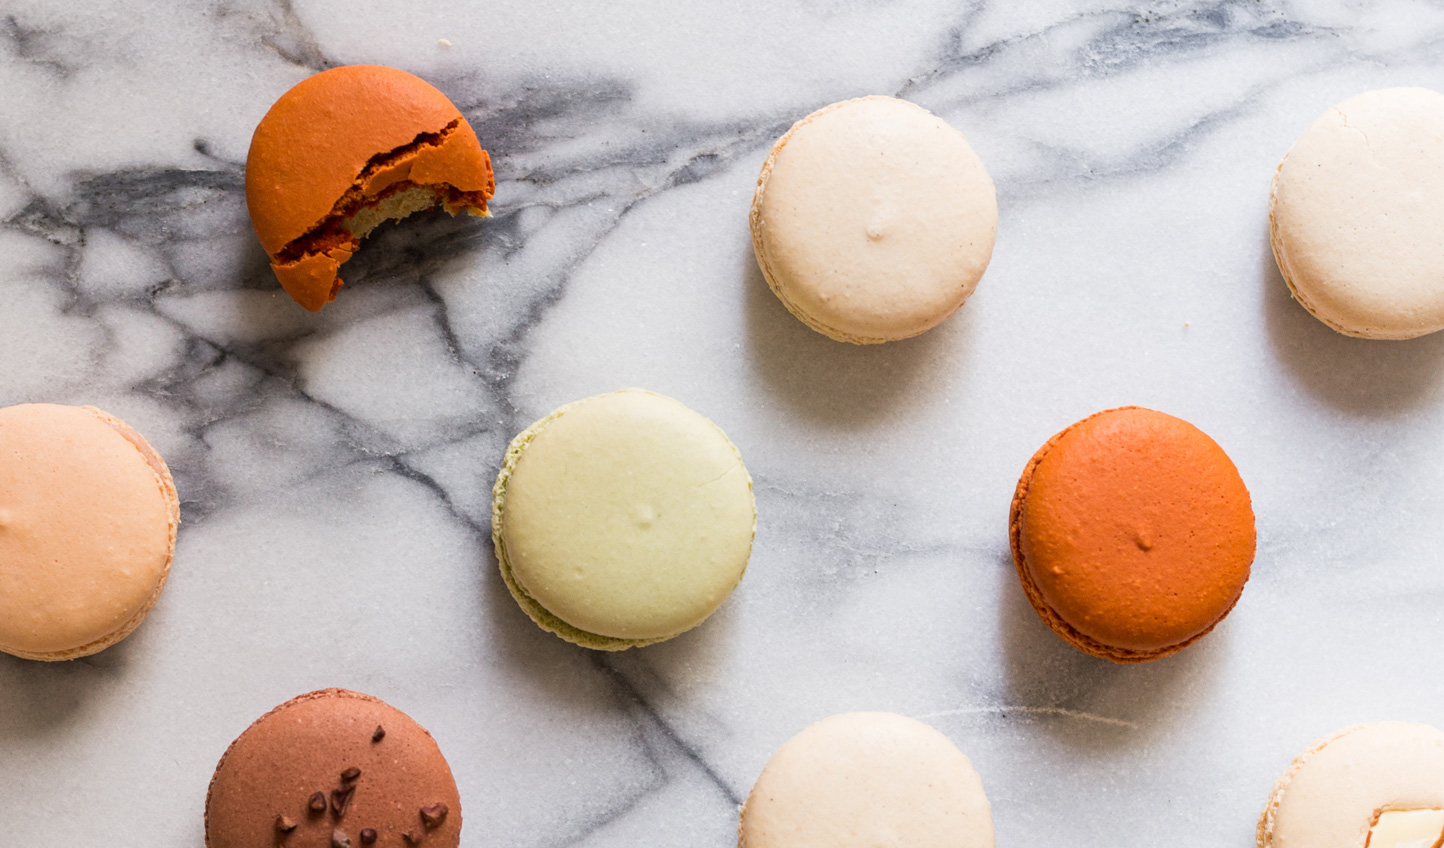 Indulge in a spot of patisserie